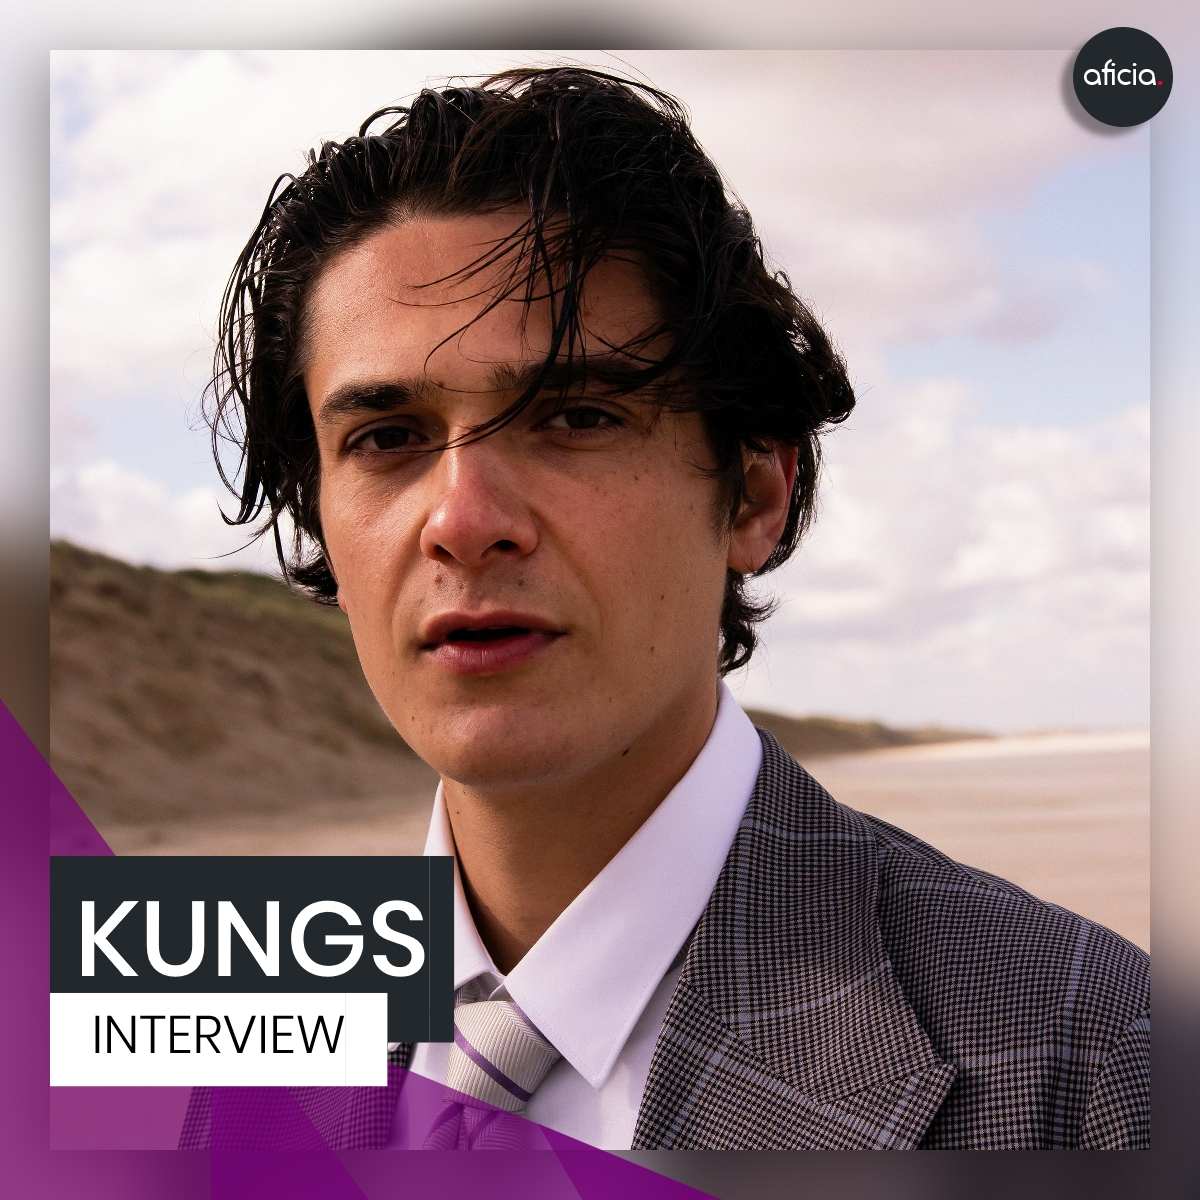 Kungs - Interview